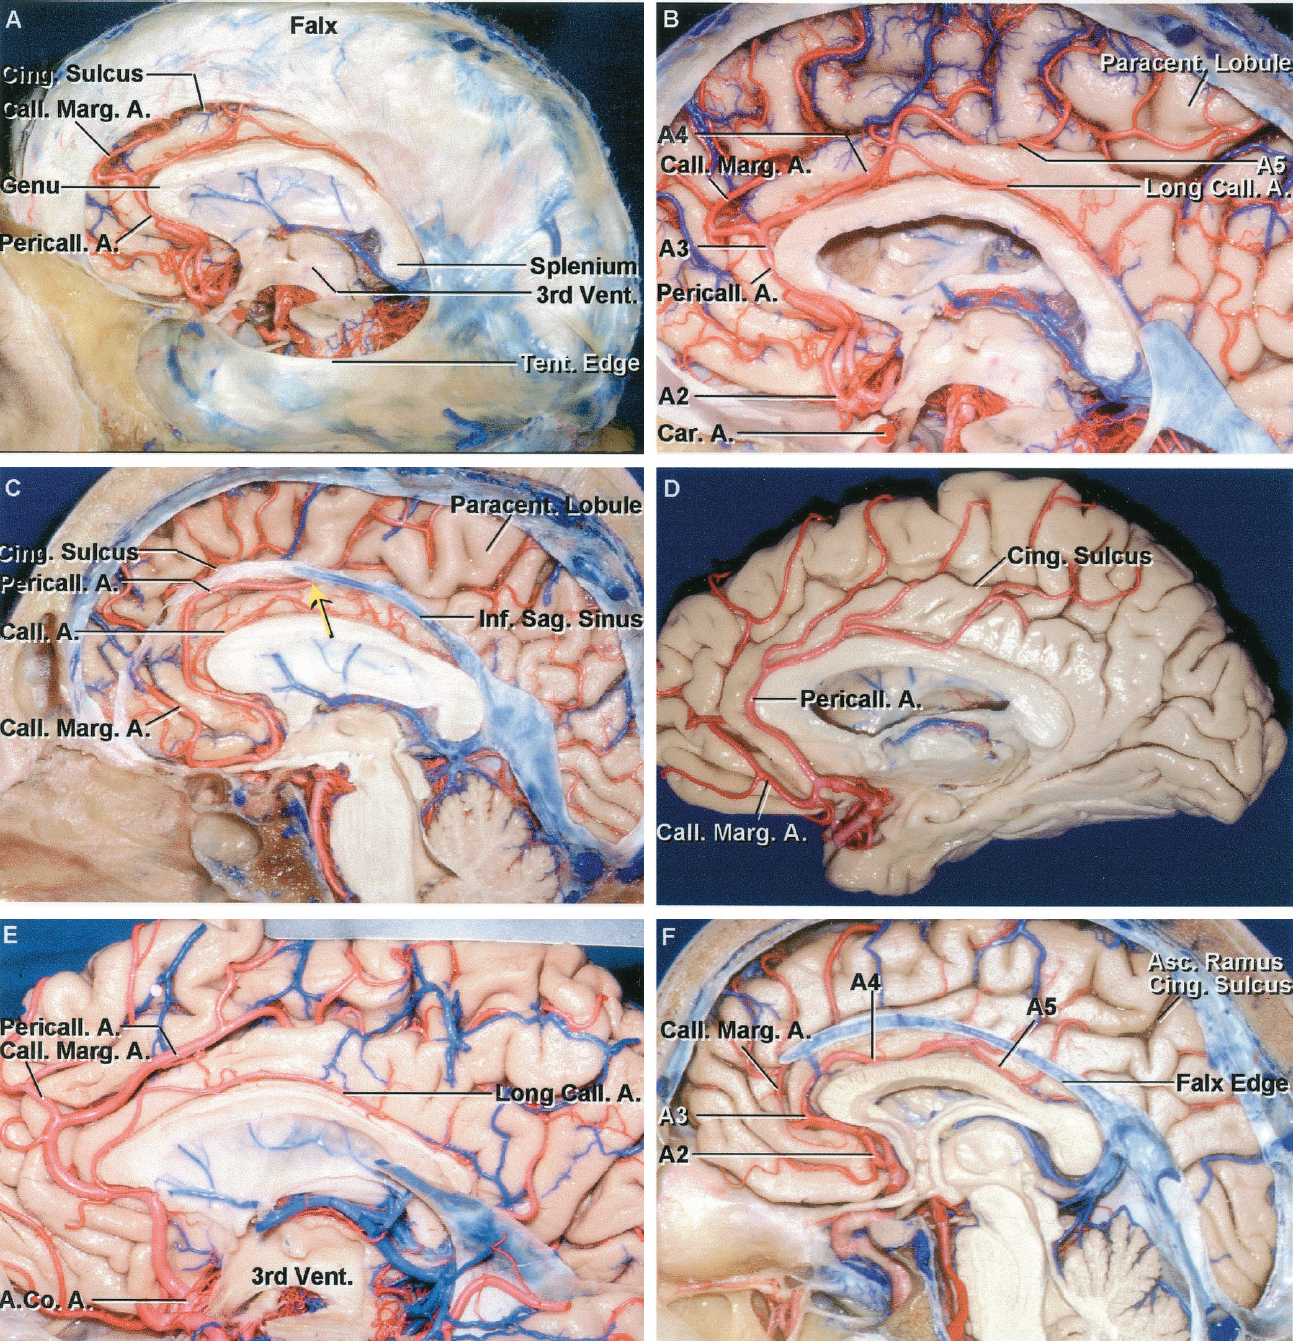 FIGURE 2.22. Variations in the origin of the callosomarginal artery from the pericallosal artery. The pericallosal artery is defined as arising at the AComA and the callosomarginal is defined as the branch arising from the pericallosal to course along the cingulate sulcus and supply two or more cortical areas. The callosomarginal artery can arise from the pericallosal artery just distal to the AComA or at any site along the course of the pericallosal artery. A and B show the most common variation in which the callosomarginal artery arises as the pericallosal artery courses around the genu of the corpus callosum. A, the callosomarginal artery arises anterior to the genu of the corpus callosum. The distal part of the ACA, the part beginning at the AComA, is divided into four segments: The A2 extends from the AComA to the lower margin of the corpus callosum; the A3 courses around the anterior part of the corpus callosum; the A4 and A5 course above the anterior and posterior half of the corpus callosum, respectively. The anterior part of the falx cerebri is more widely separated from the corpus callosum than the posterior part. The inner edge of the anterior part of the falx is widely separated from the anterior part of the corpus callosum, but the space between the falx and callosal surface narrows as it proceeds posteriorly so that the posterior falx tightly hugs the splenium. The wide opening anteriorly between the falx and the corpus callosum permits the anterior part of the hemisphere and the more forward branches of the ACA to exhibit greater shift anteriorly than posteriorly. B, the falx has been removed. The distal ACA branches extend around the margins of the hemisphere to reach the orbital surface of the frontal lobe and the anterior two-thirds of the lateral convexity. The distal part of the pericallosal artery ascends to course along the cingulate sulcus to reach the paracentral lobule. C, the callosomarginal artery arises just distal to the AComA in the cis